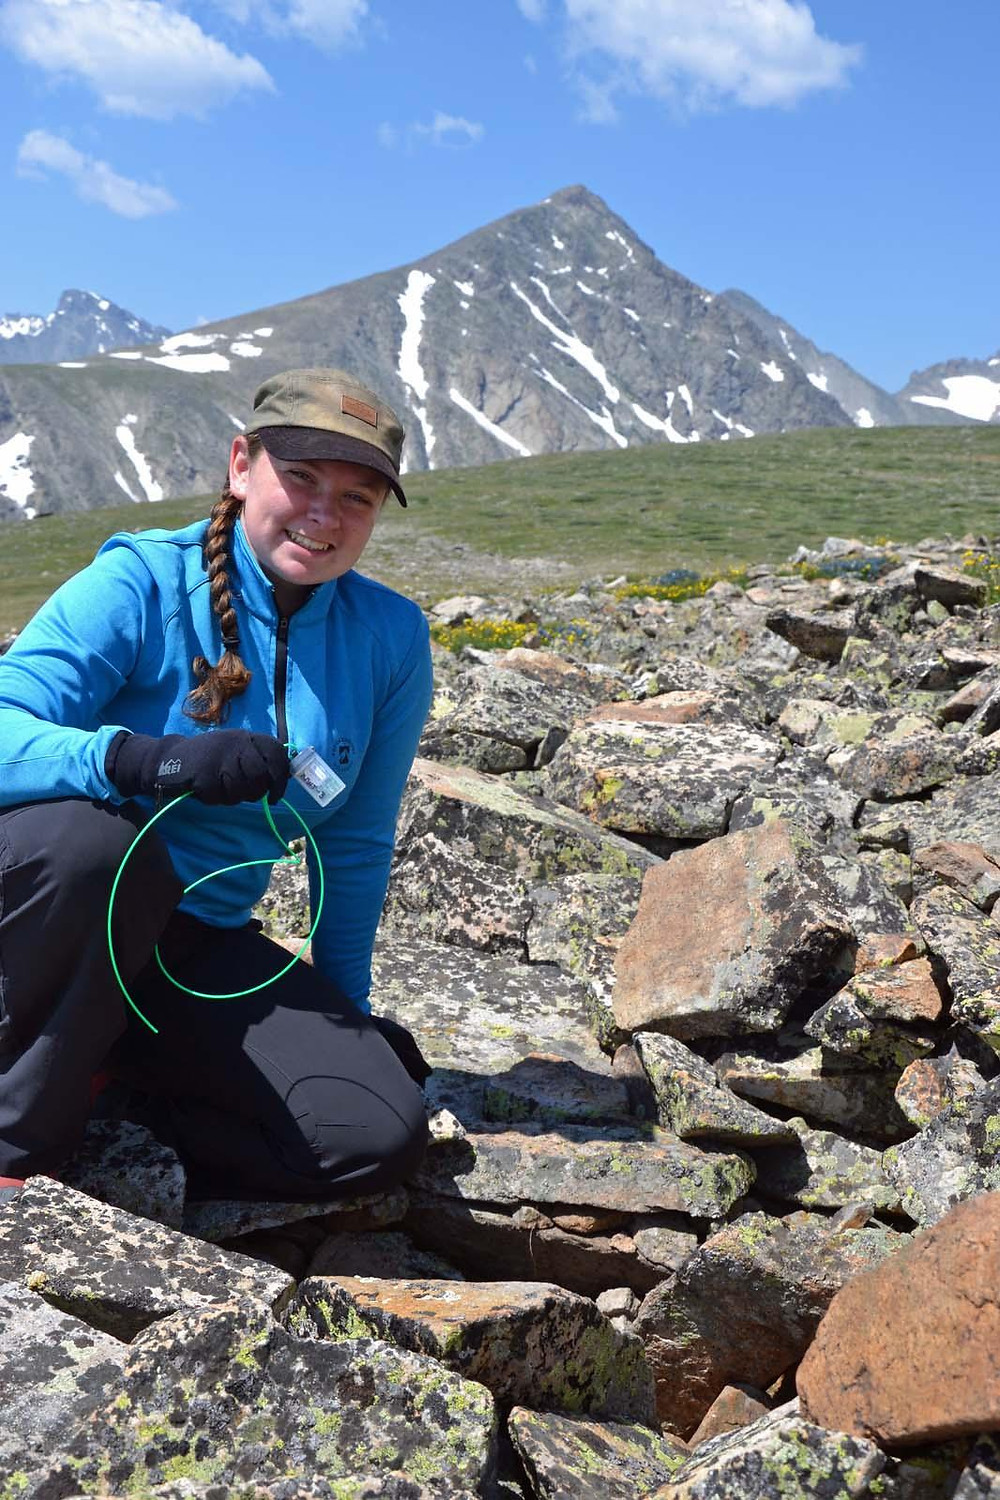 Emily placing a temperature sensor in a place that used to be occupied by pikas